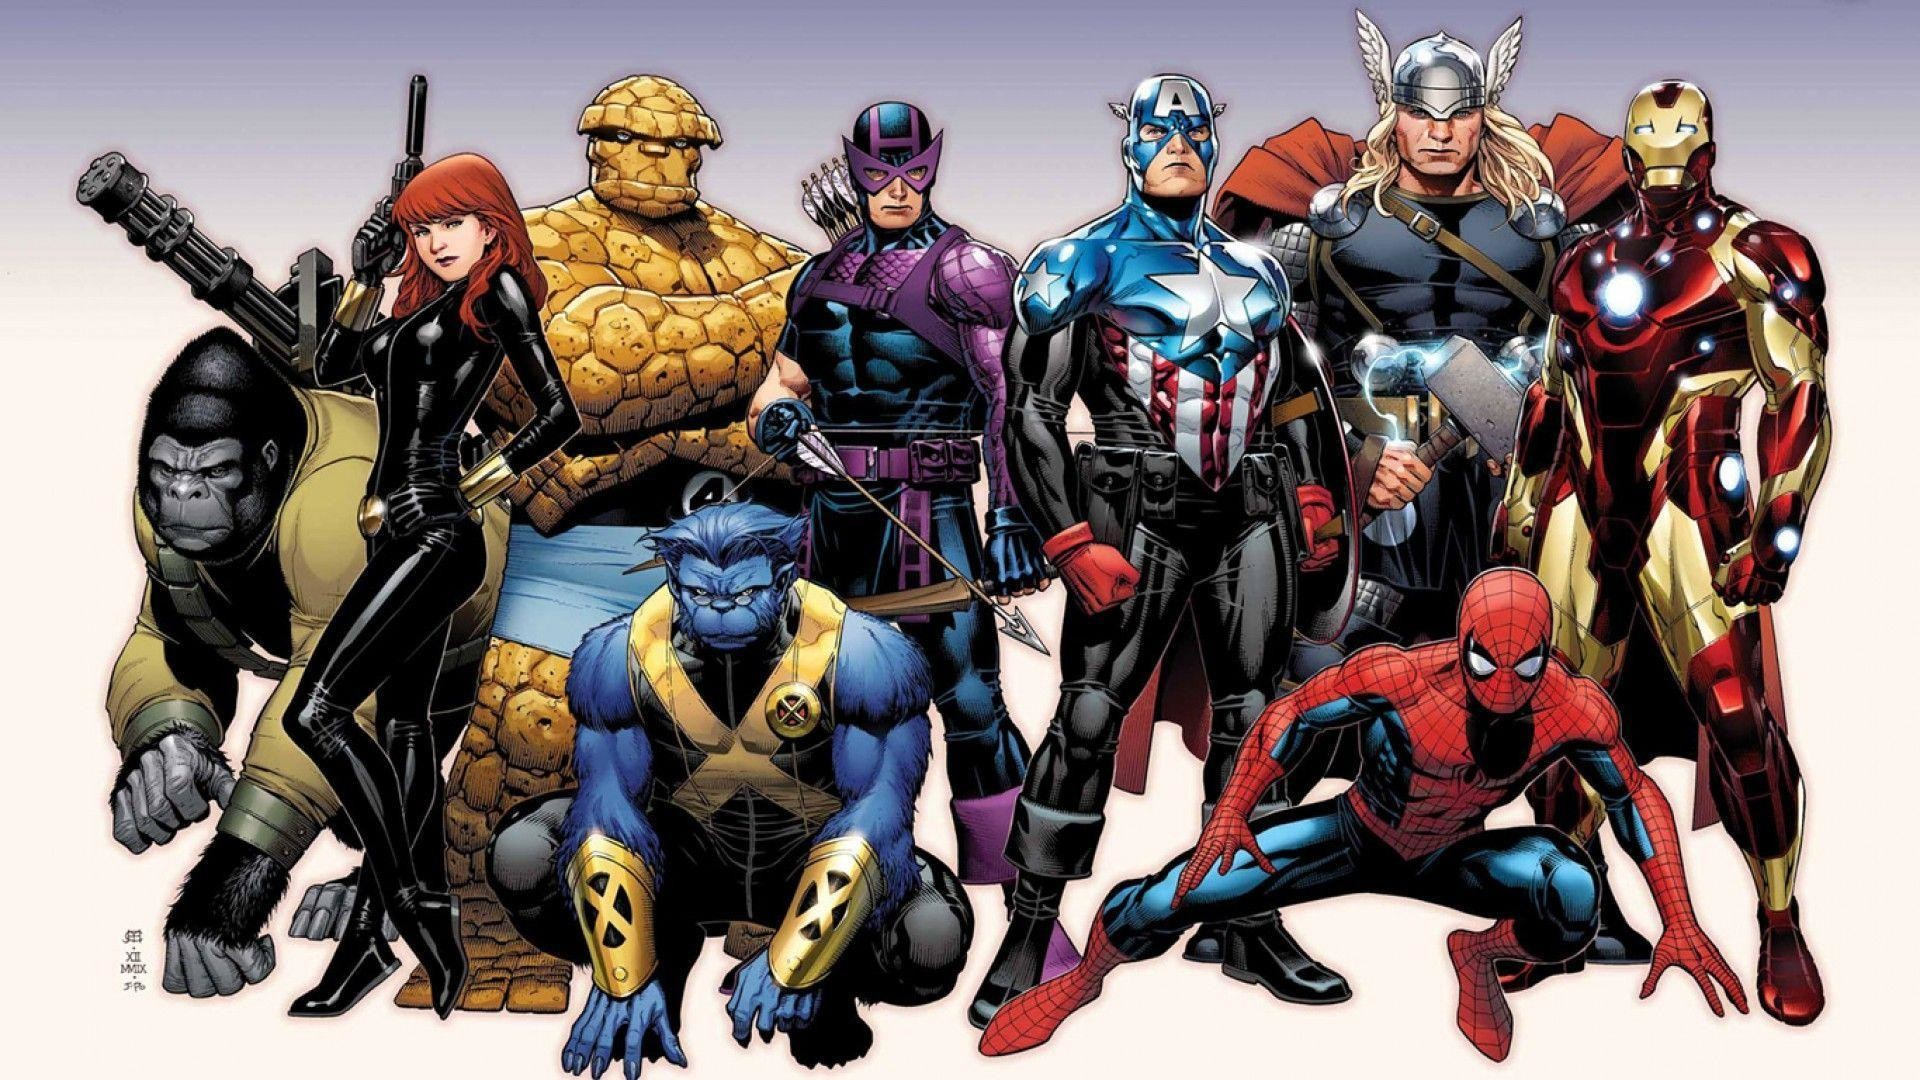 Res: 1920x1080, Fonds d'écran Marvel Comics : tous les wallpapers Marvel Comics